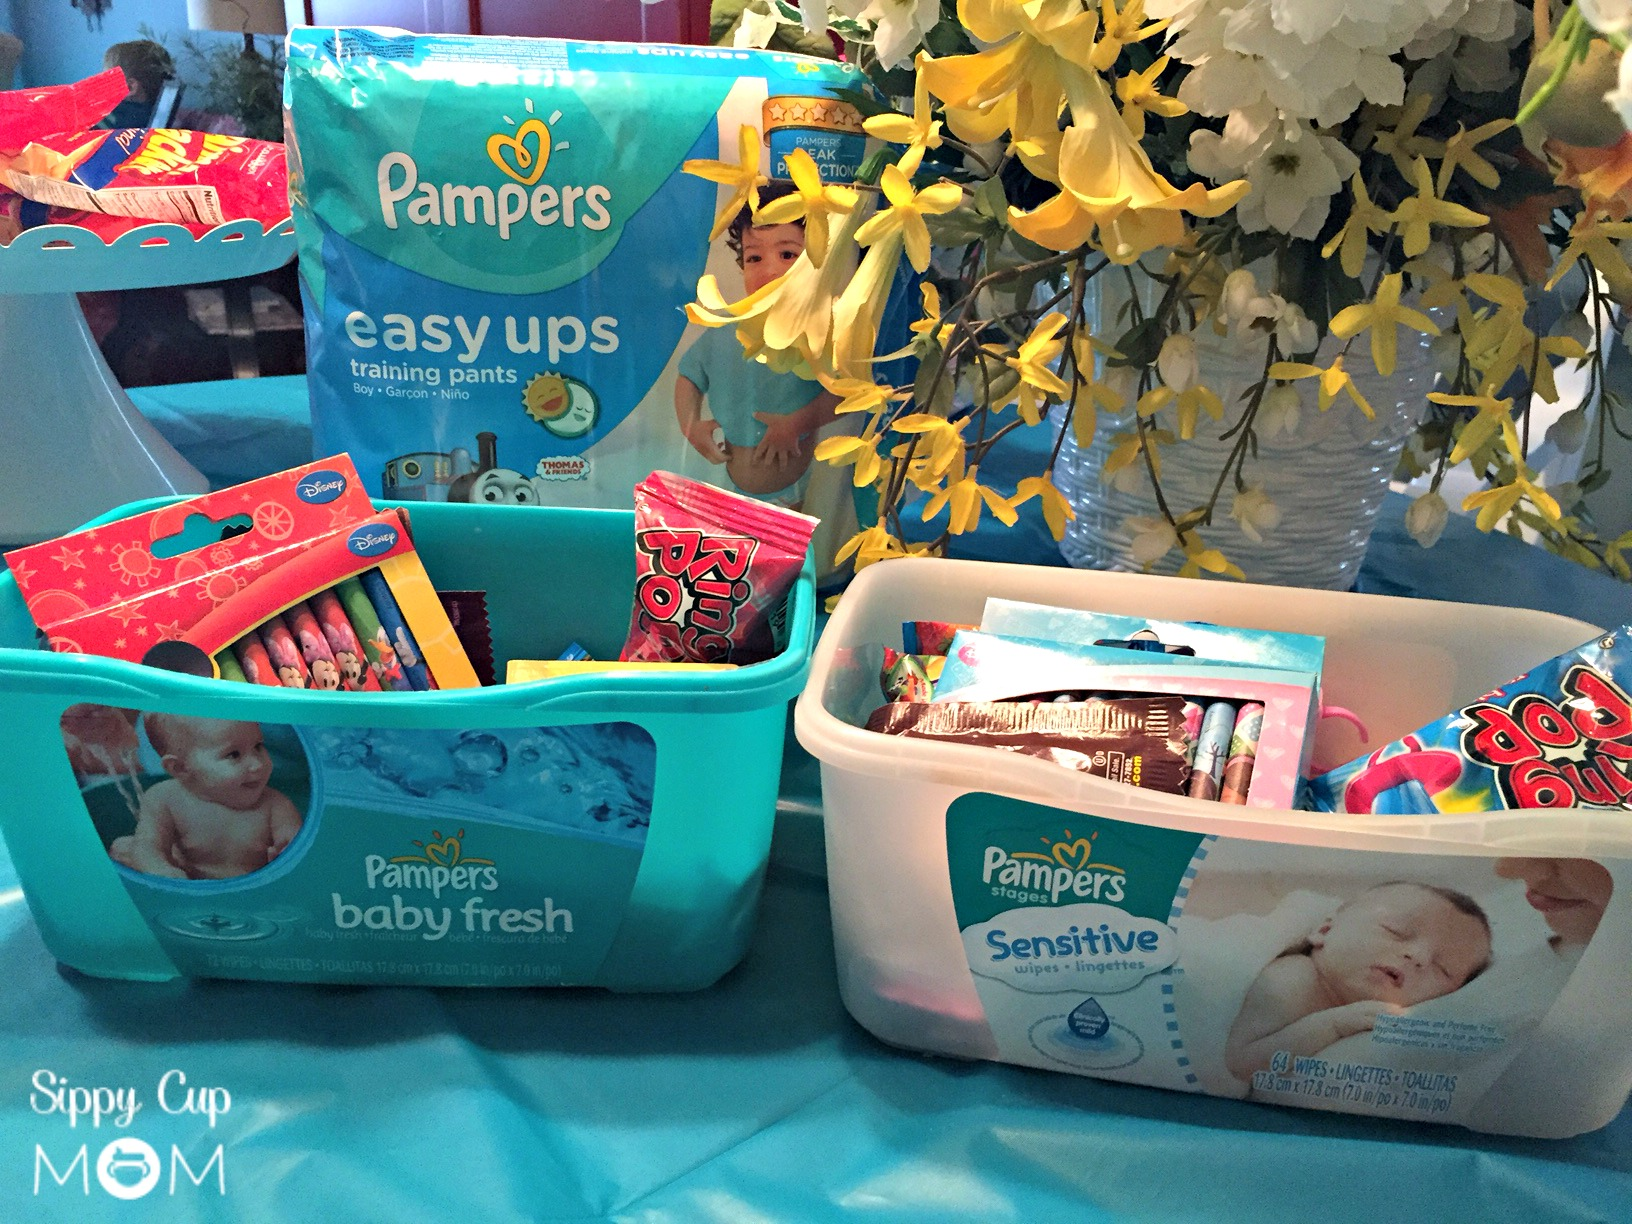 Encourage Potty Training With A Pampers Easy Ups Party